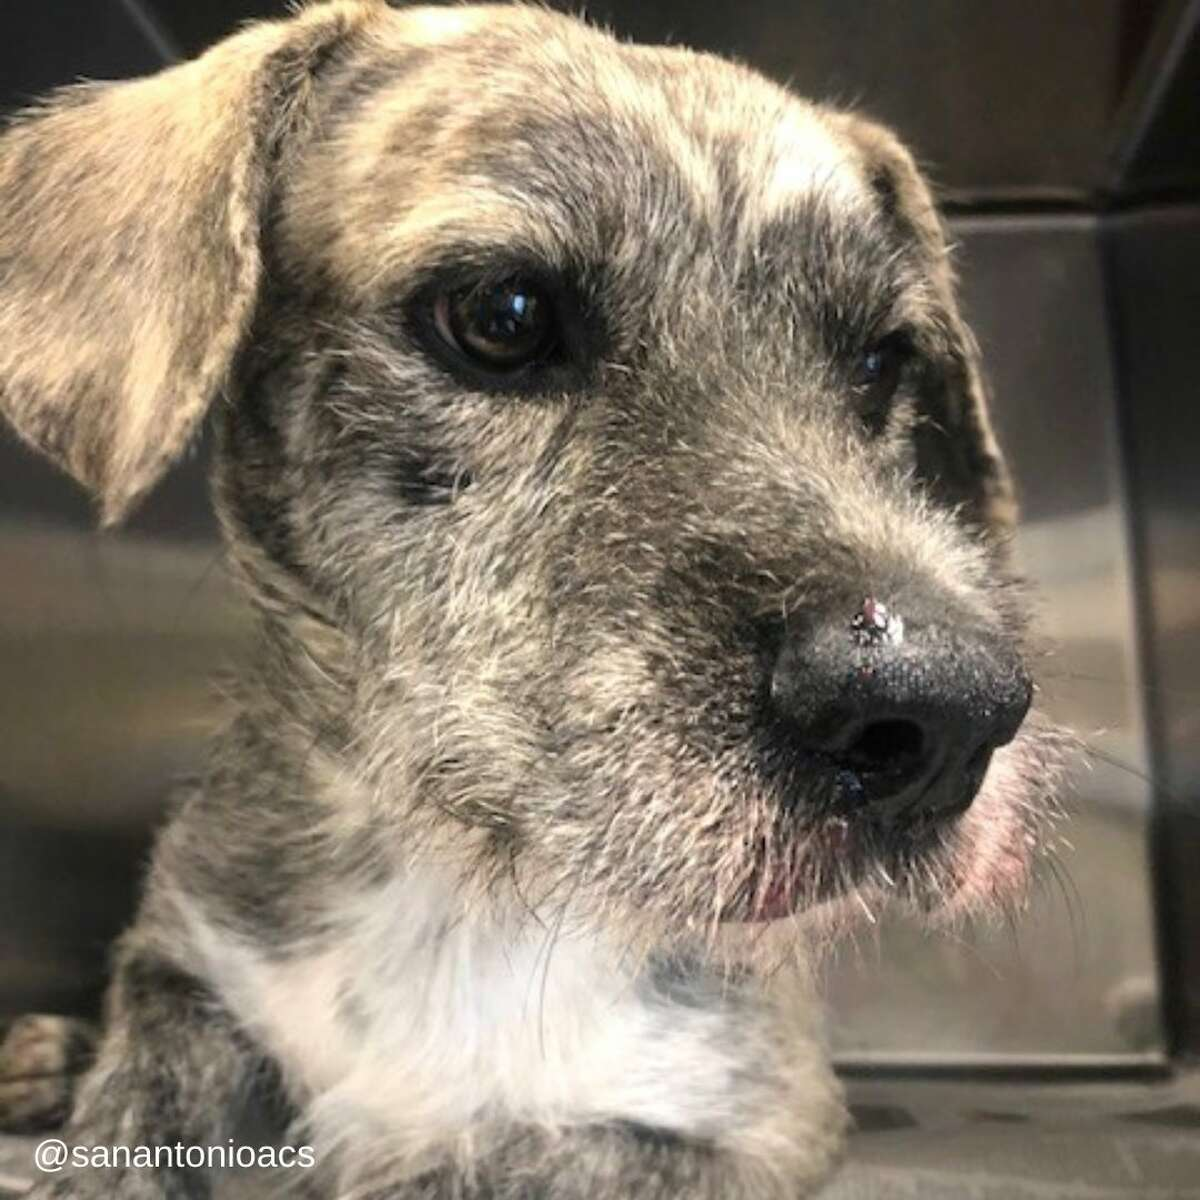 """""""He's a great dog. He just didn't make very good choices yesterday,"""" Norwood said. """"Porcupines don't play, they really don't. The curiosity in him got the best of him, but we are happy he is feeling better."""""""